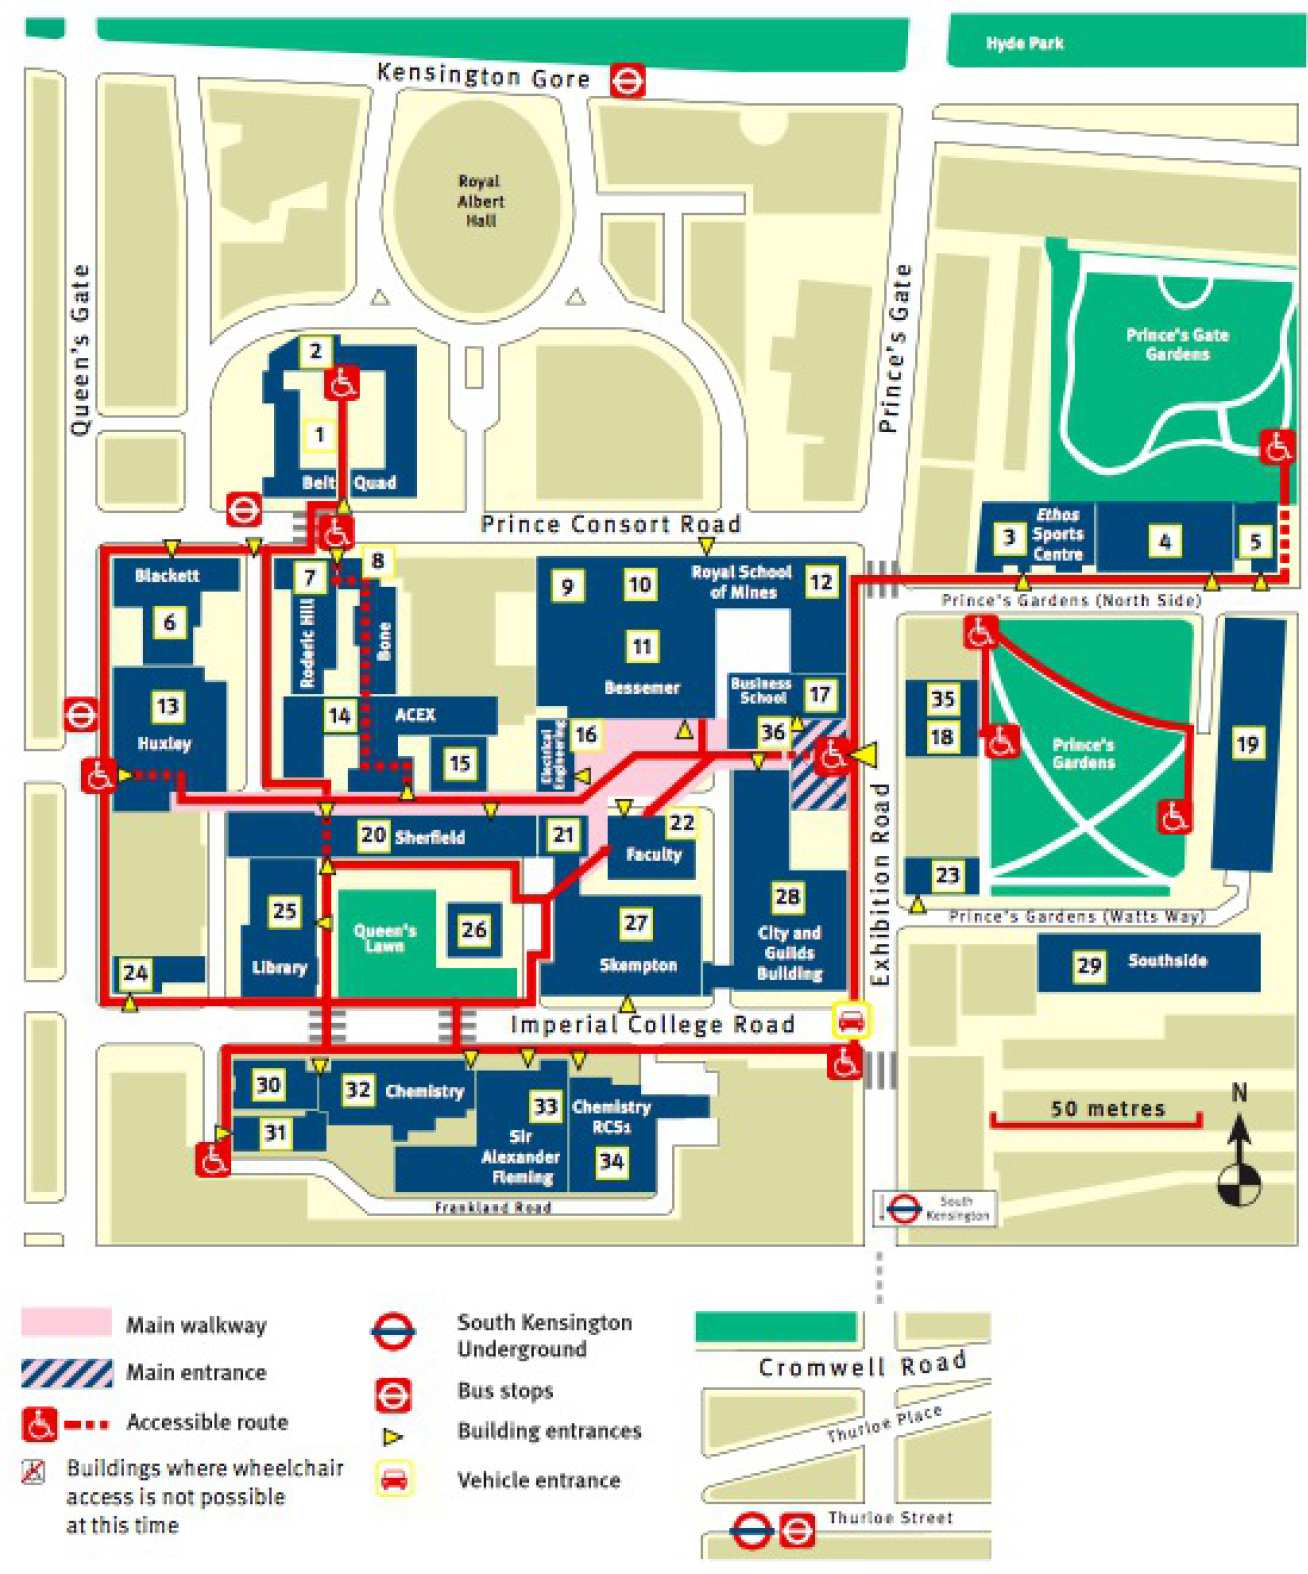 imperial college south kensington campus map Contact Us Research Groups Imperial College London imperial college south kensington campus map